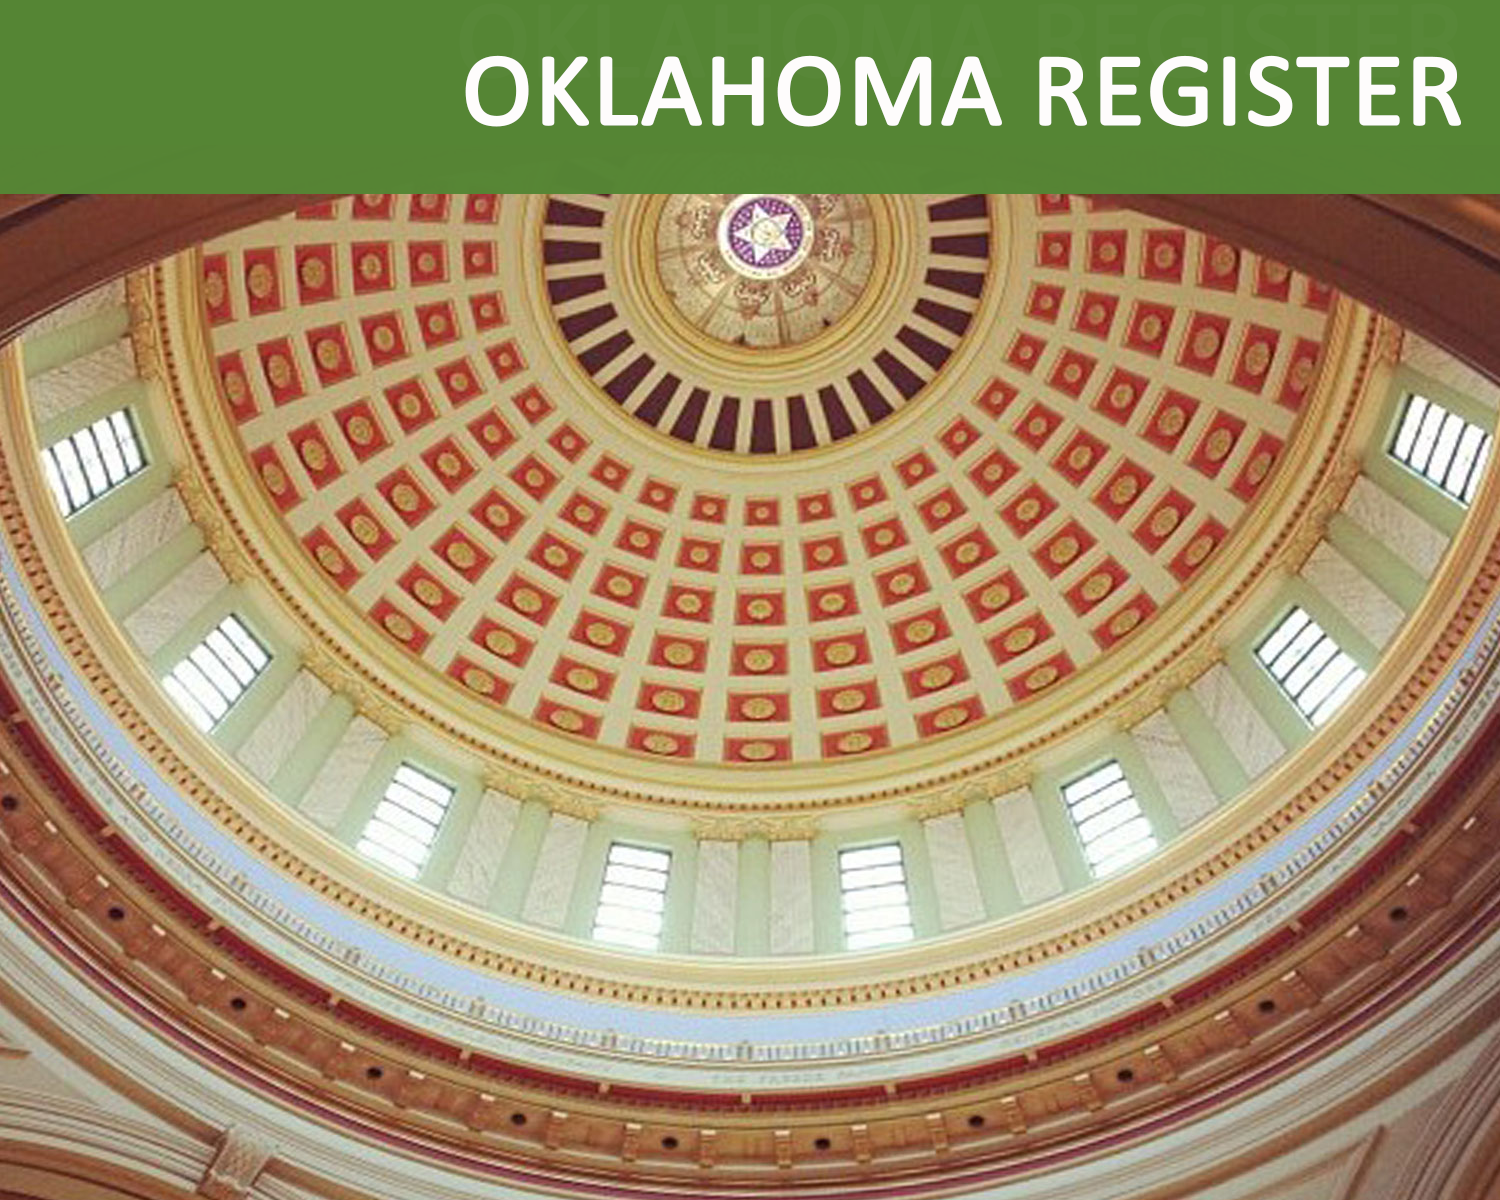 View collection of Oklahoma Register